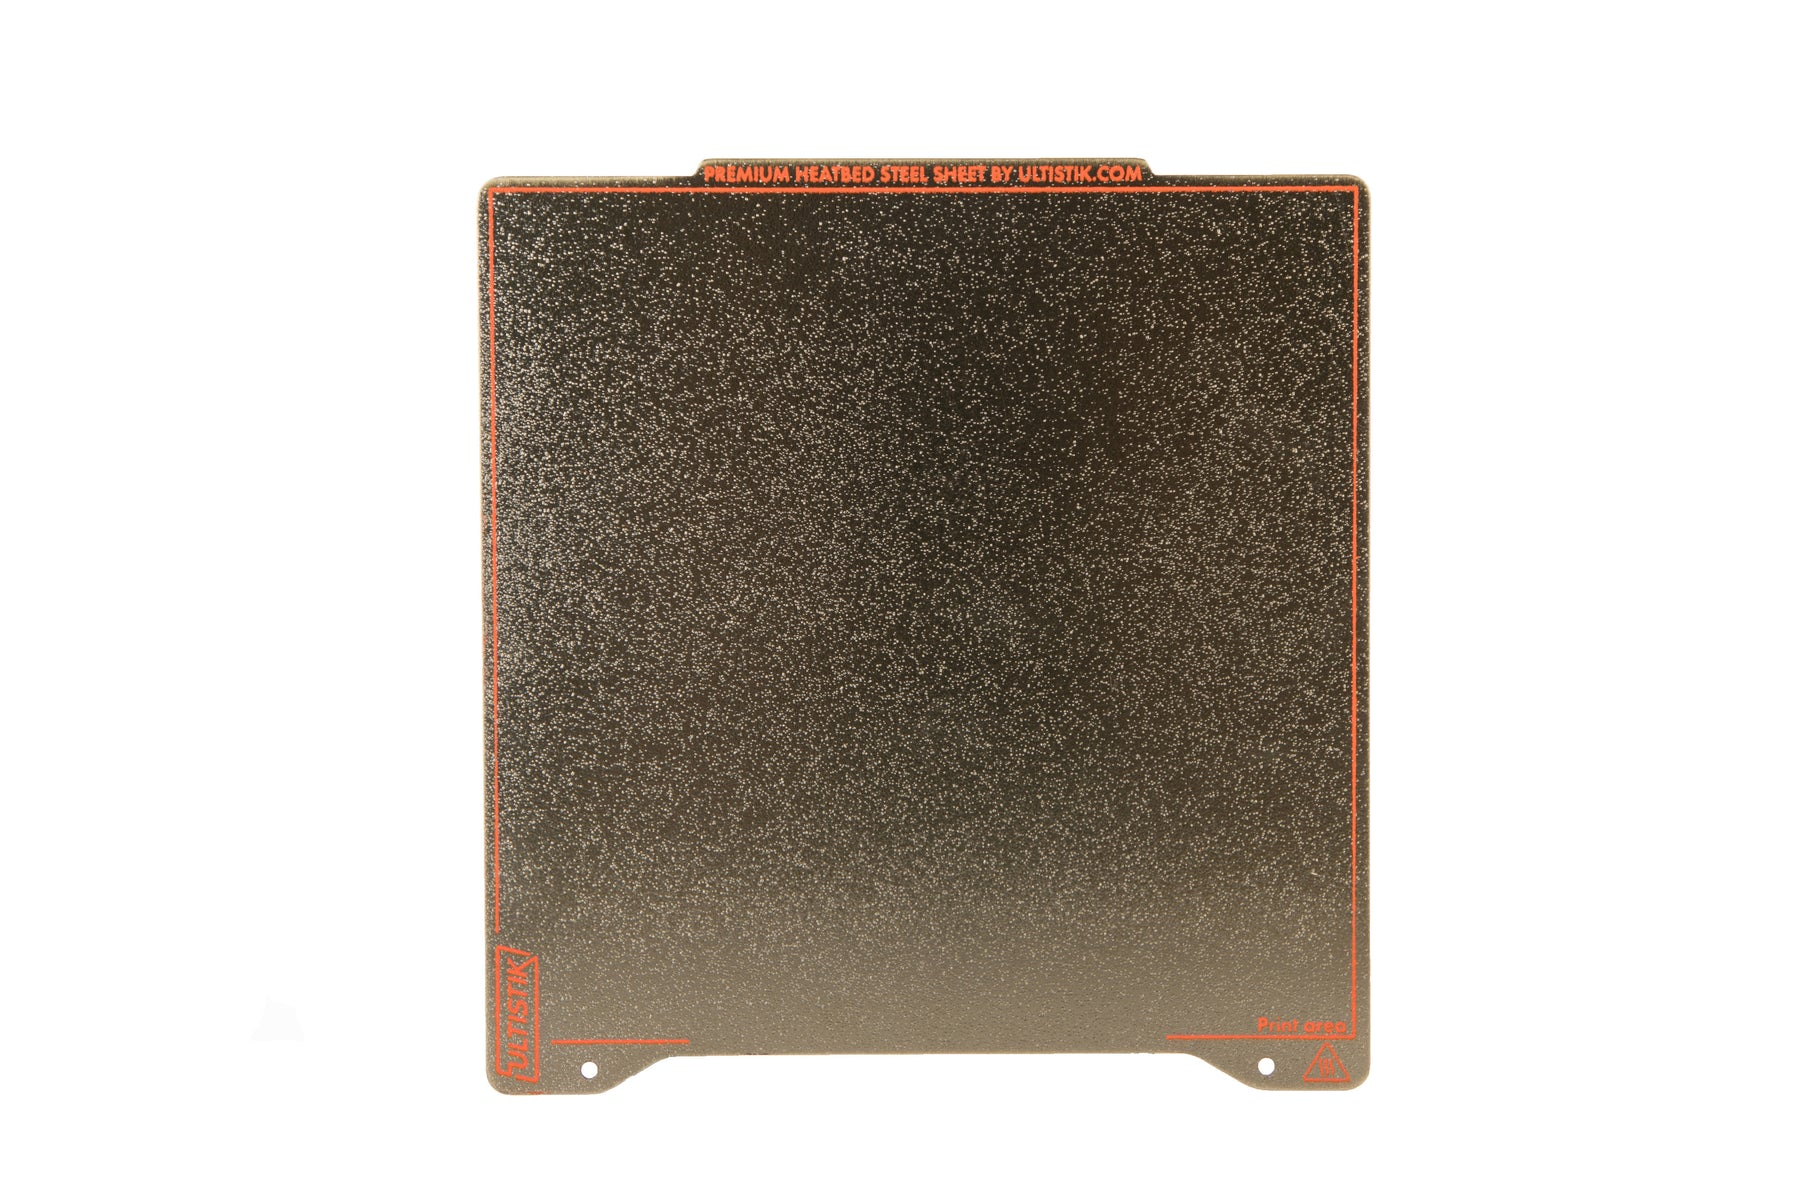 ULTISTIK Premium Powder Coated Ultem (PEI) Build Plate 196 x 190 Prusa Mini